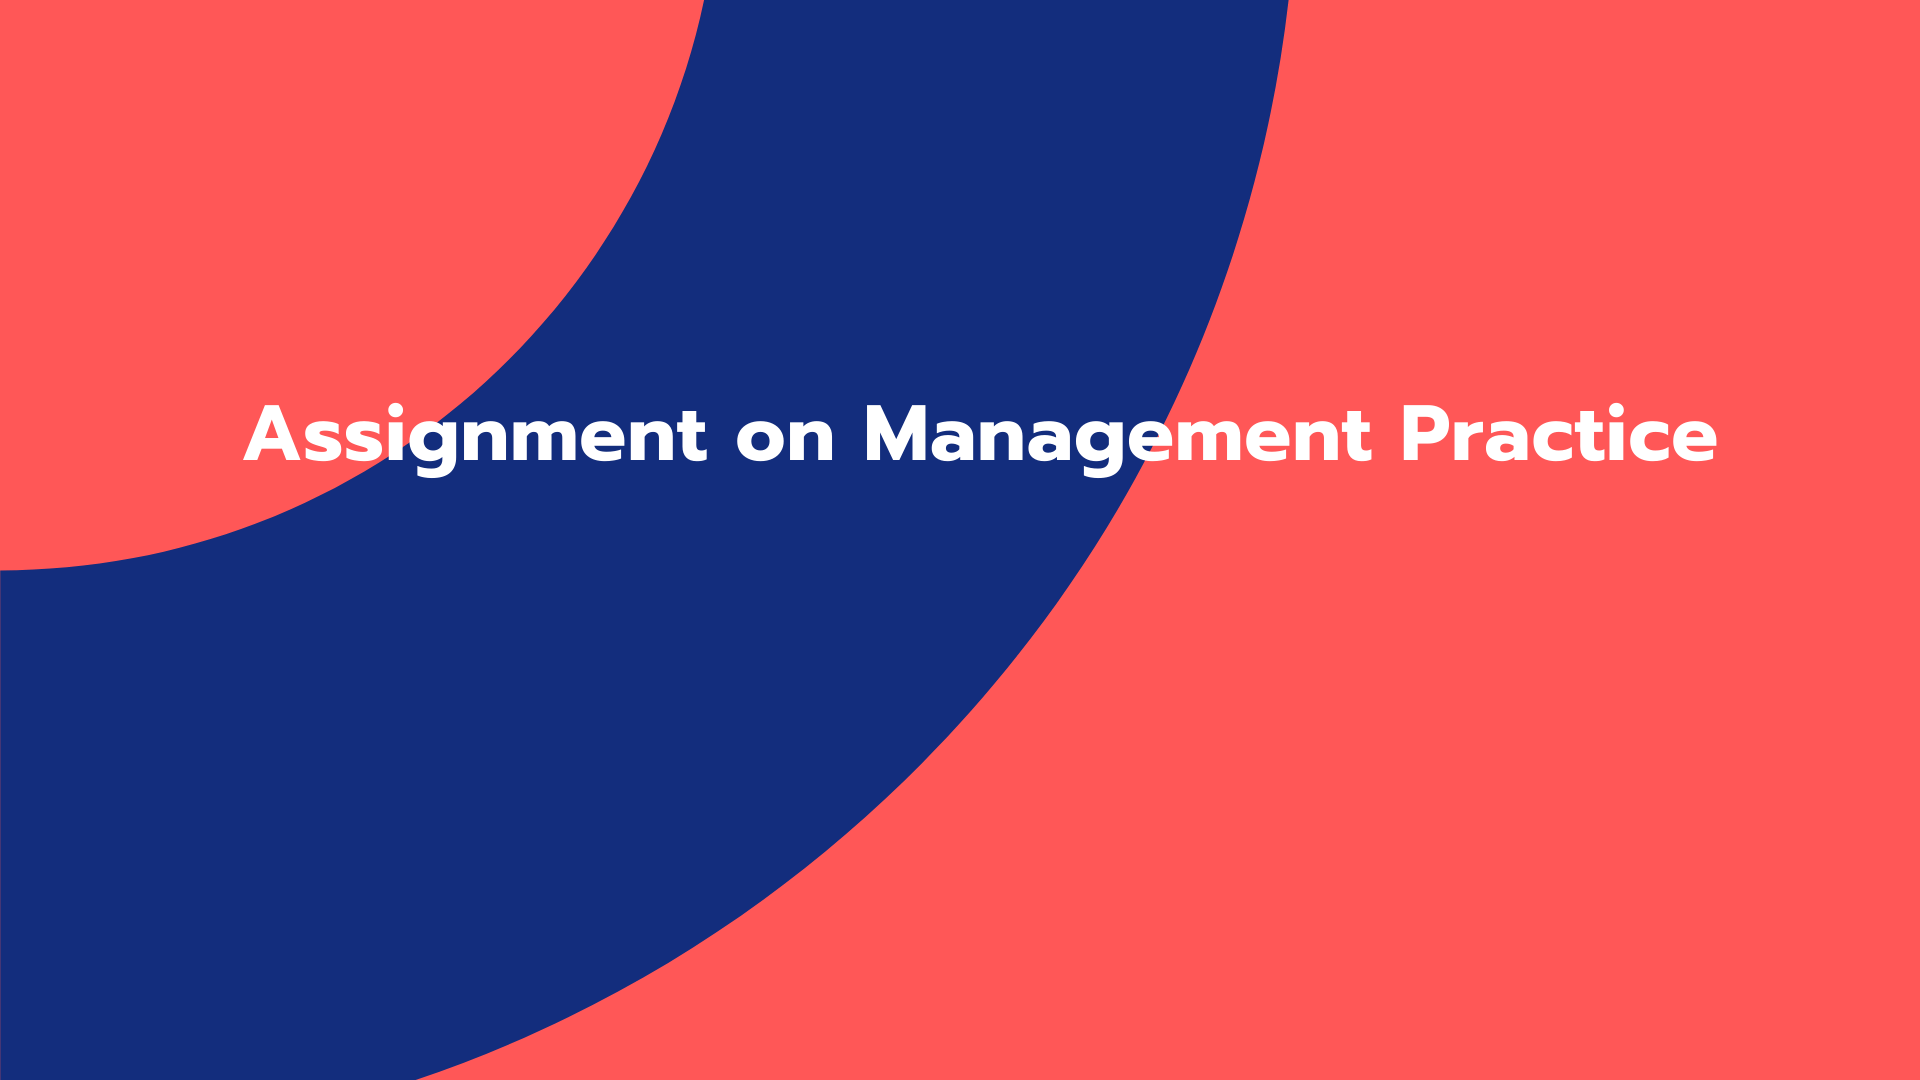 Assignment on Management Practice